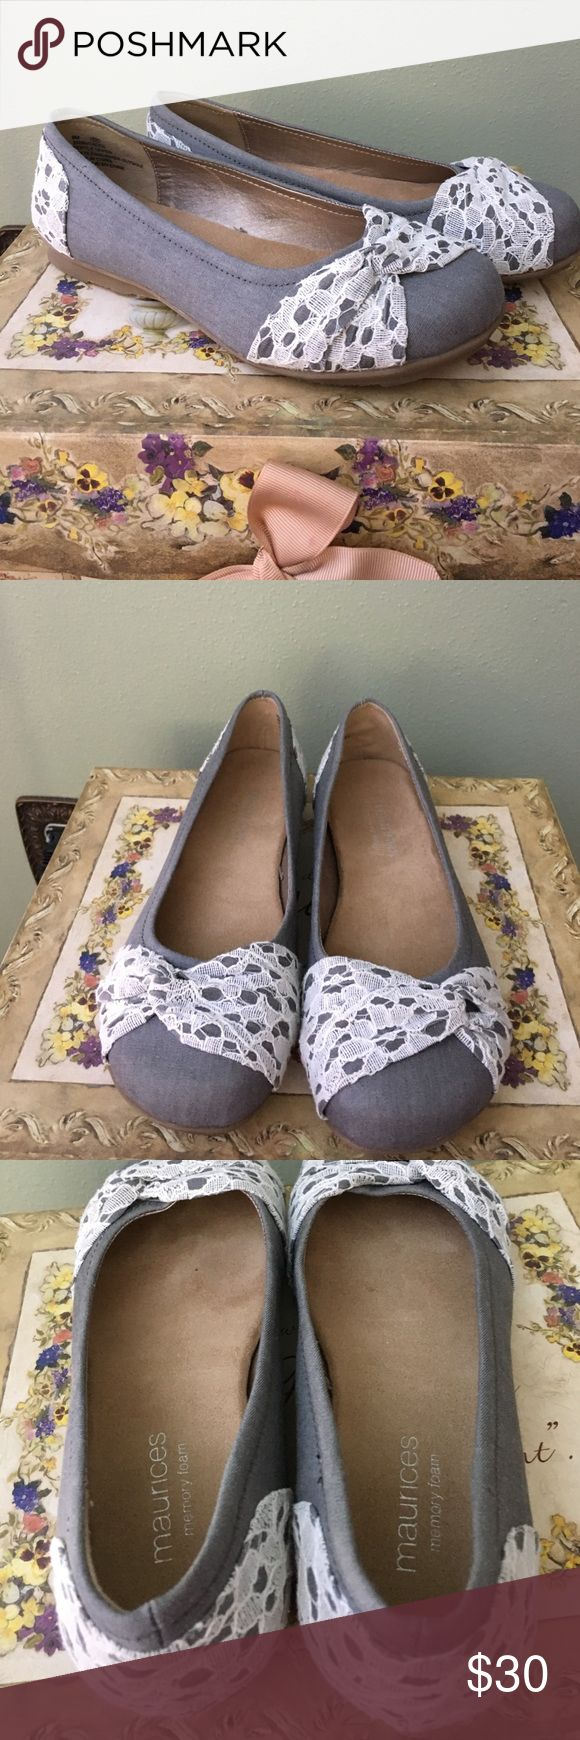 ❤️Like new Maurice's shoes❤️ Worn once!! Has memory foam, comfortable😍 Maurices Shoes